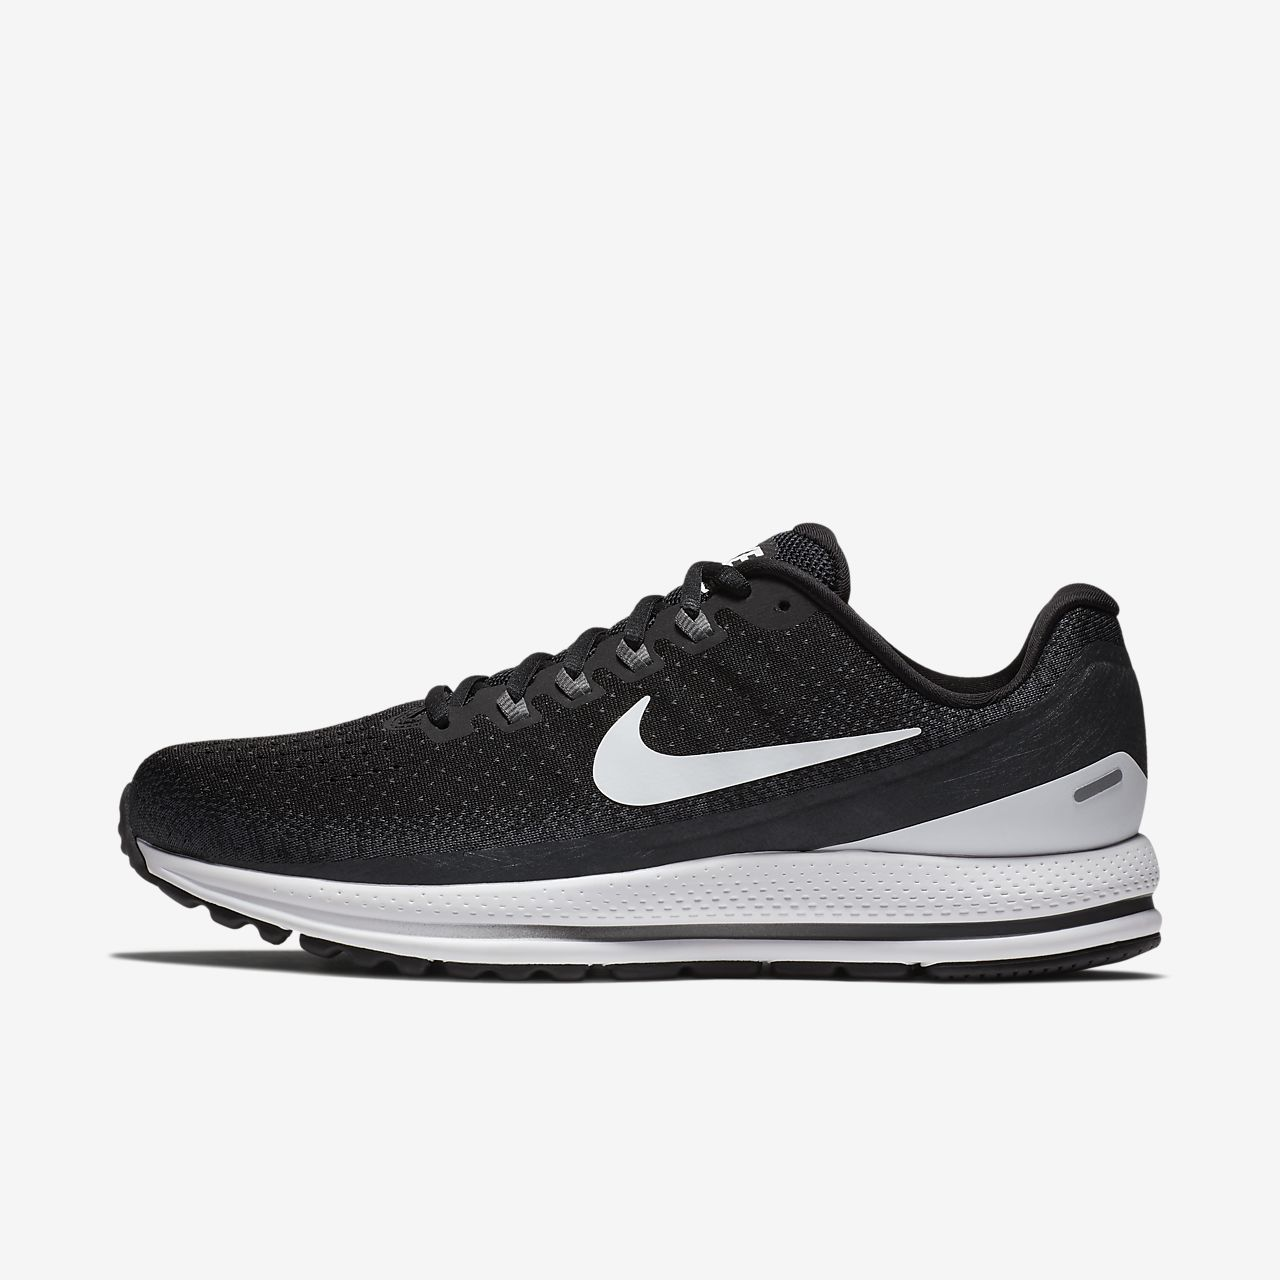 Nike Air Zoom Vomero 13 Canada Réduction limite pas cher amazon pas cher VXKwY